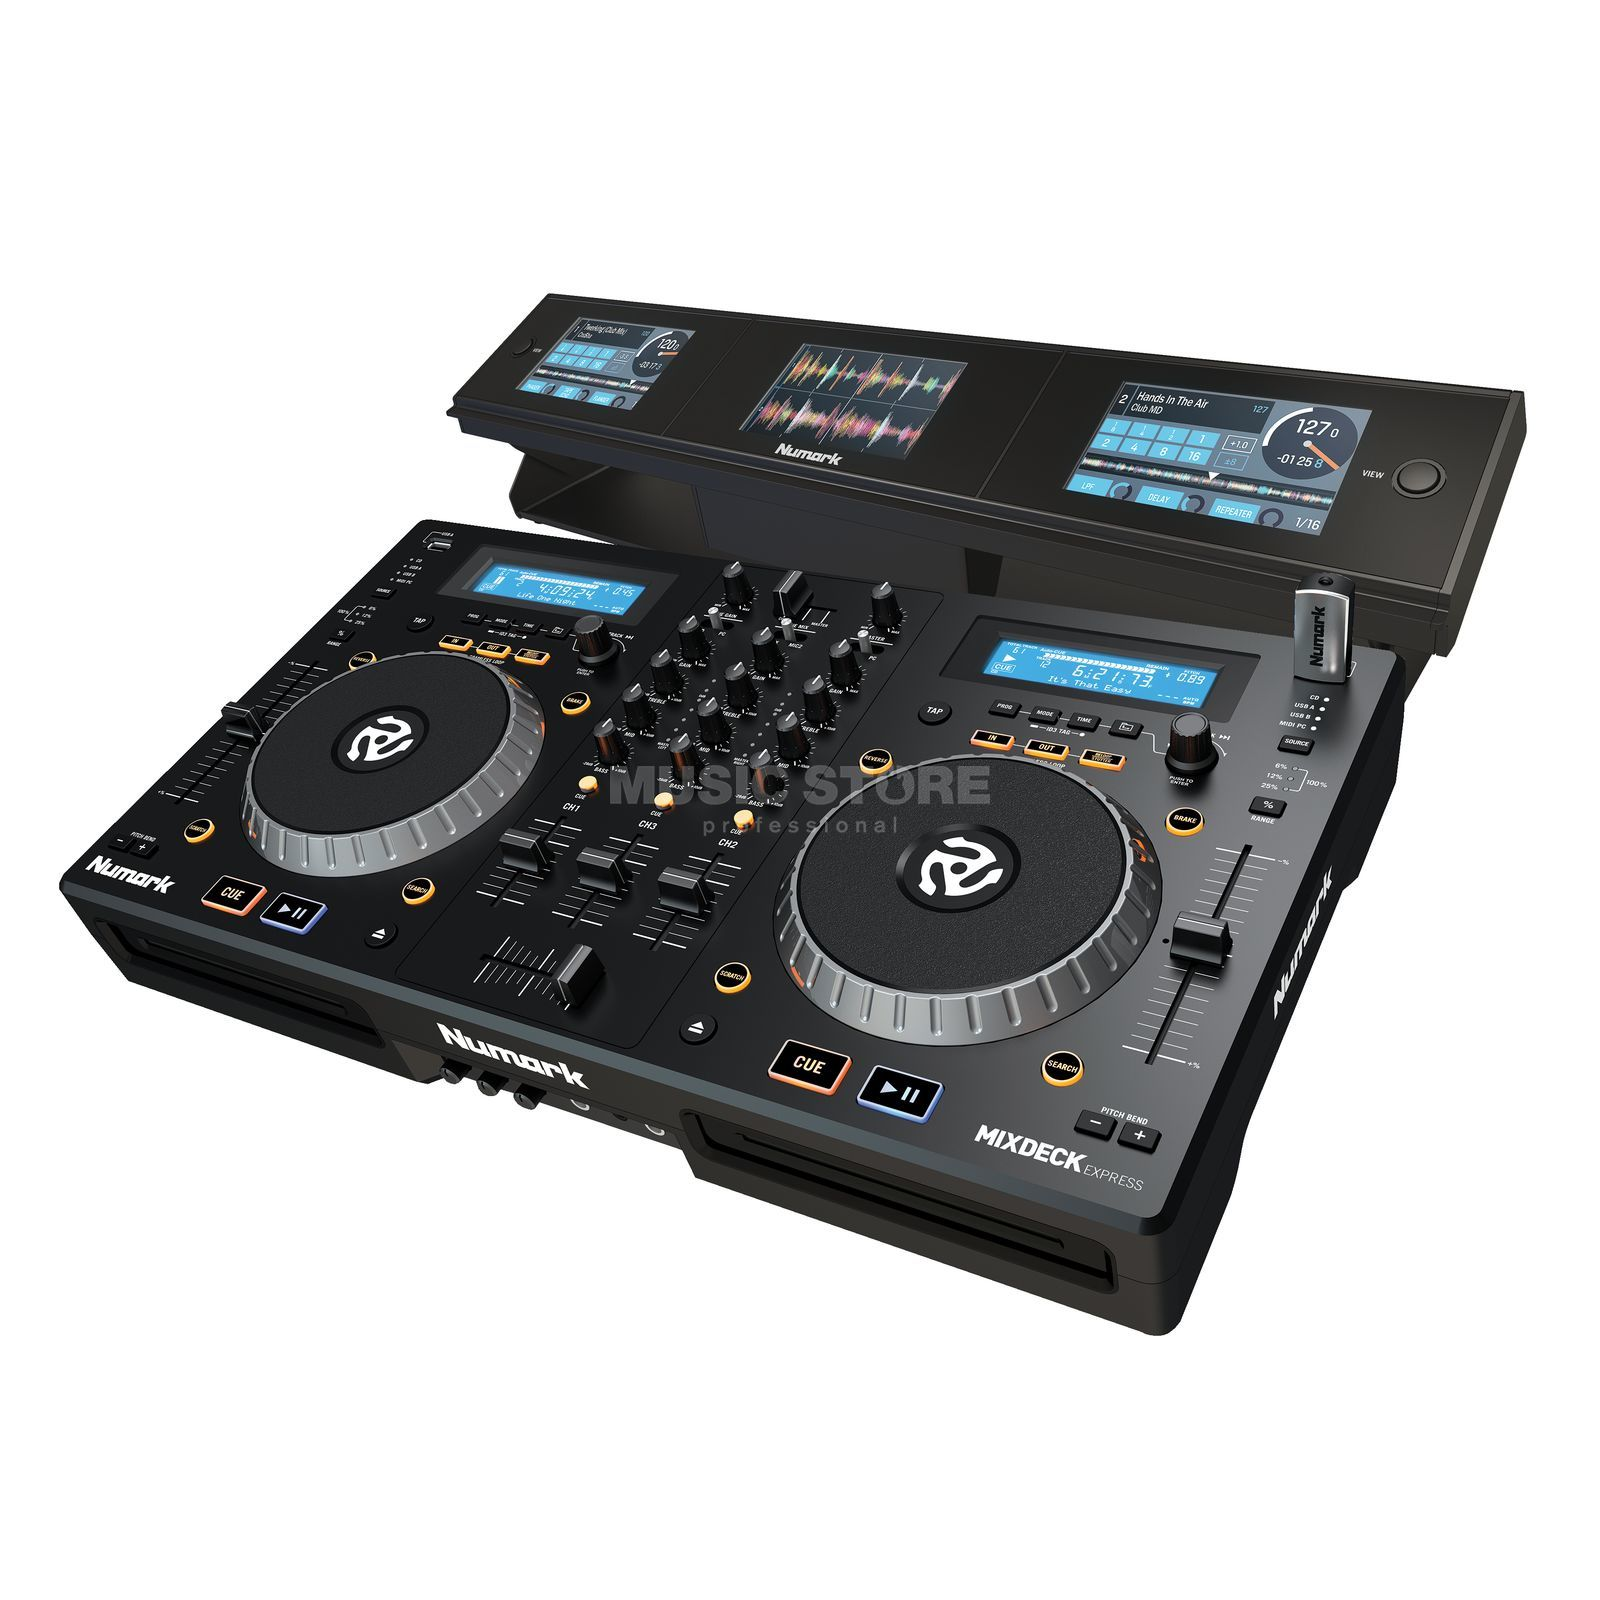 SET Numark Mixdeck Express Black incl. Dashboard Produktbild